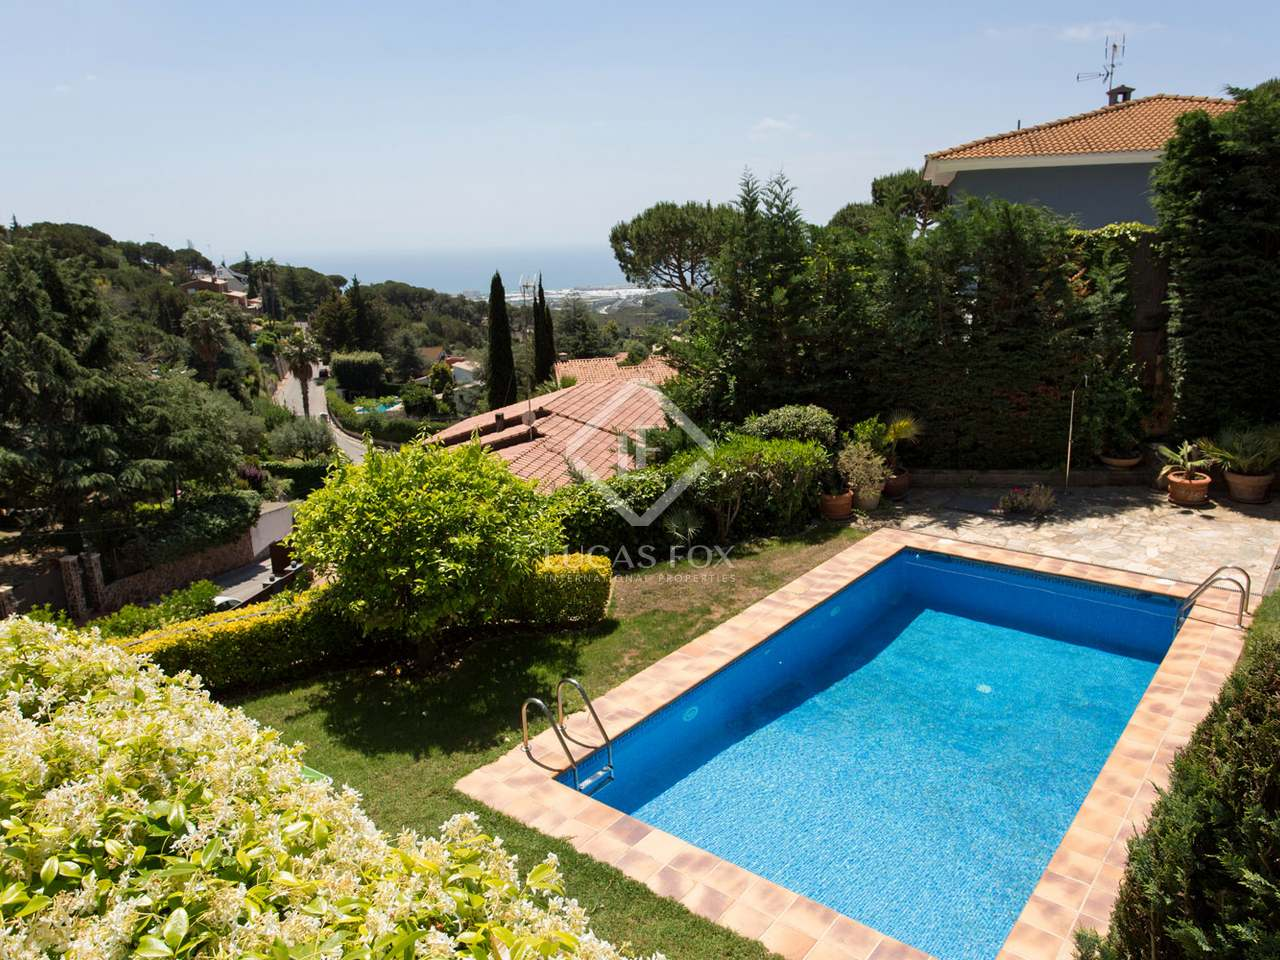 5 bedroom villa with garden and pool for sale in cabrils for Barcelona pool garden 4